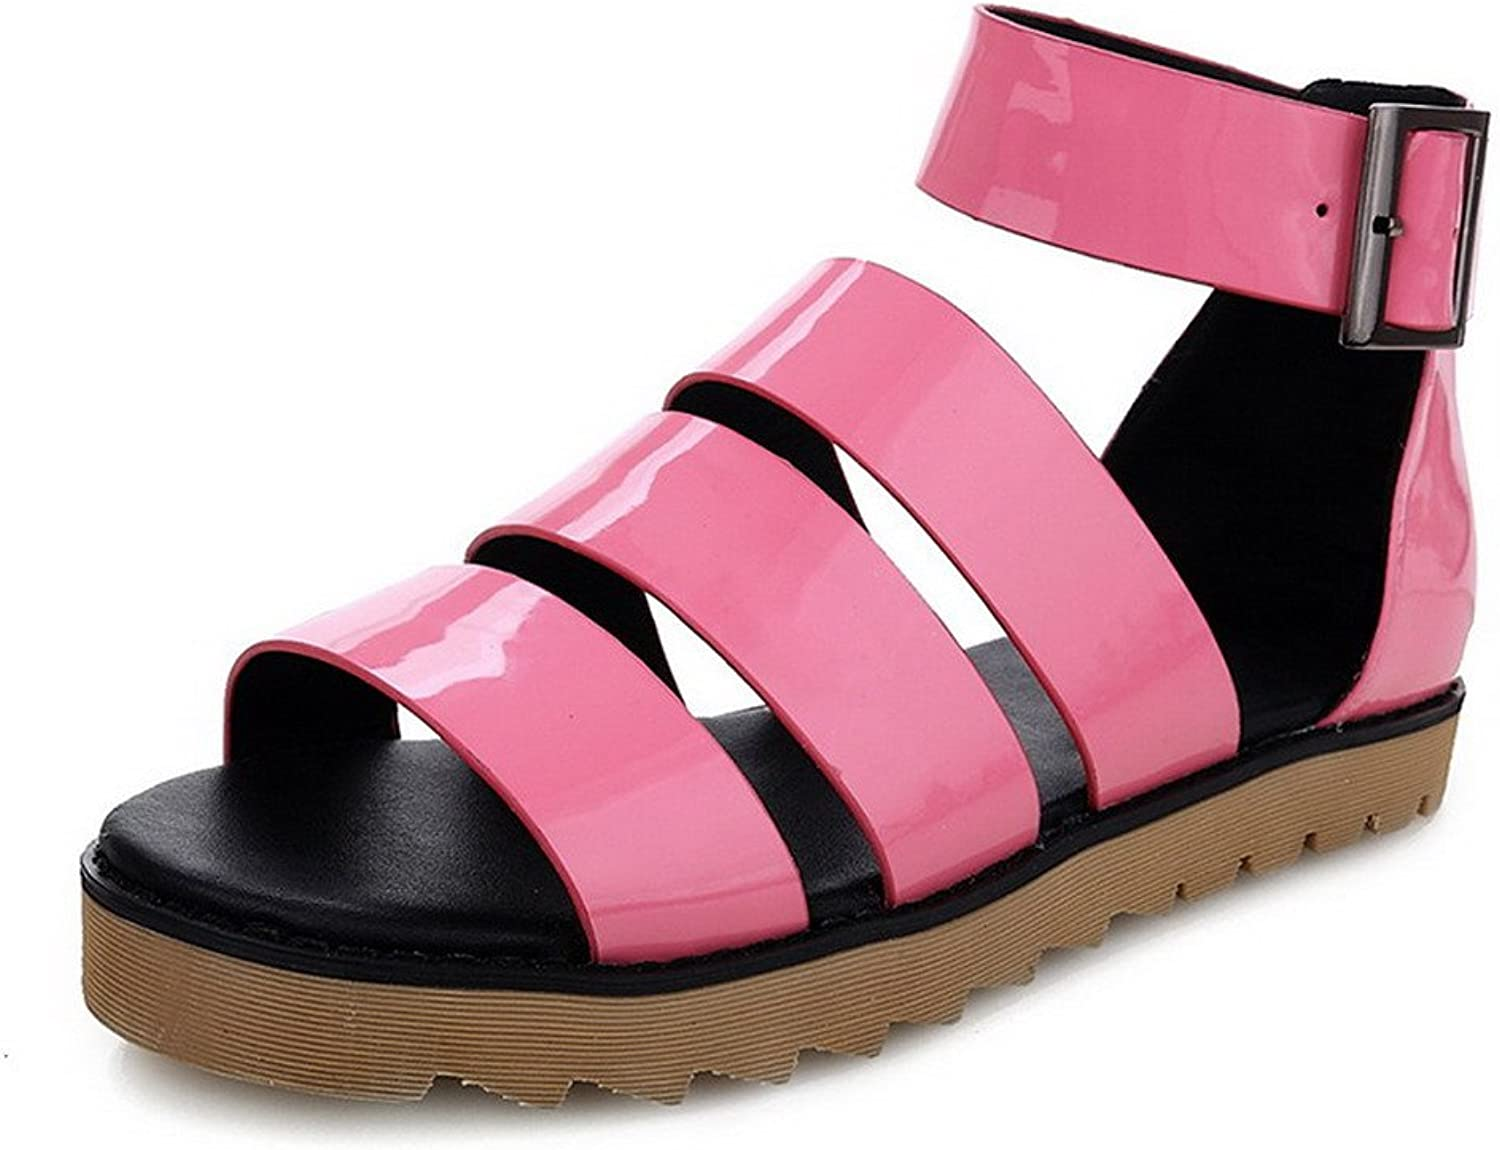 AmoonyFashion Women's Buckle Low-Heels Cow Leather Solid Open Toe Sandals